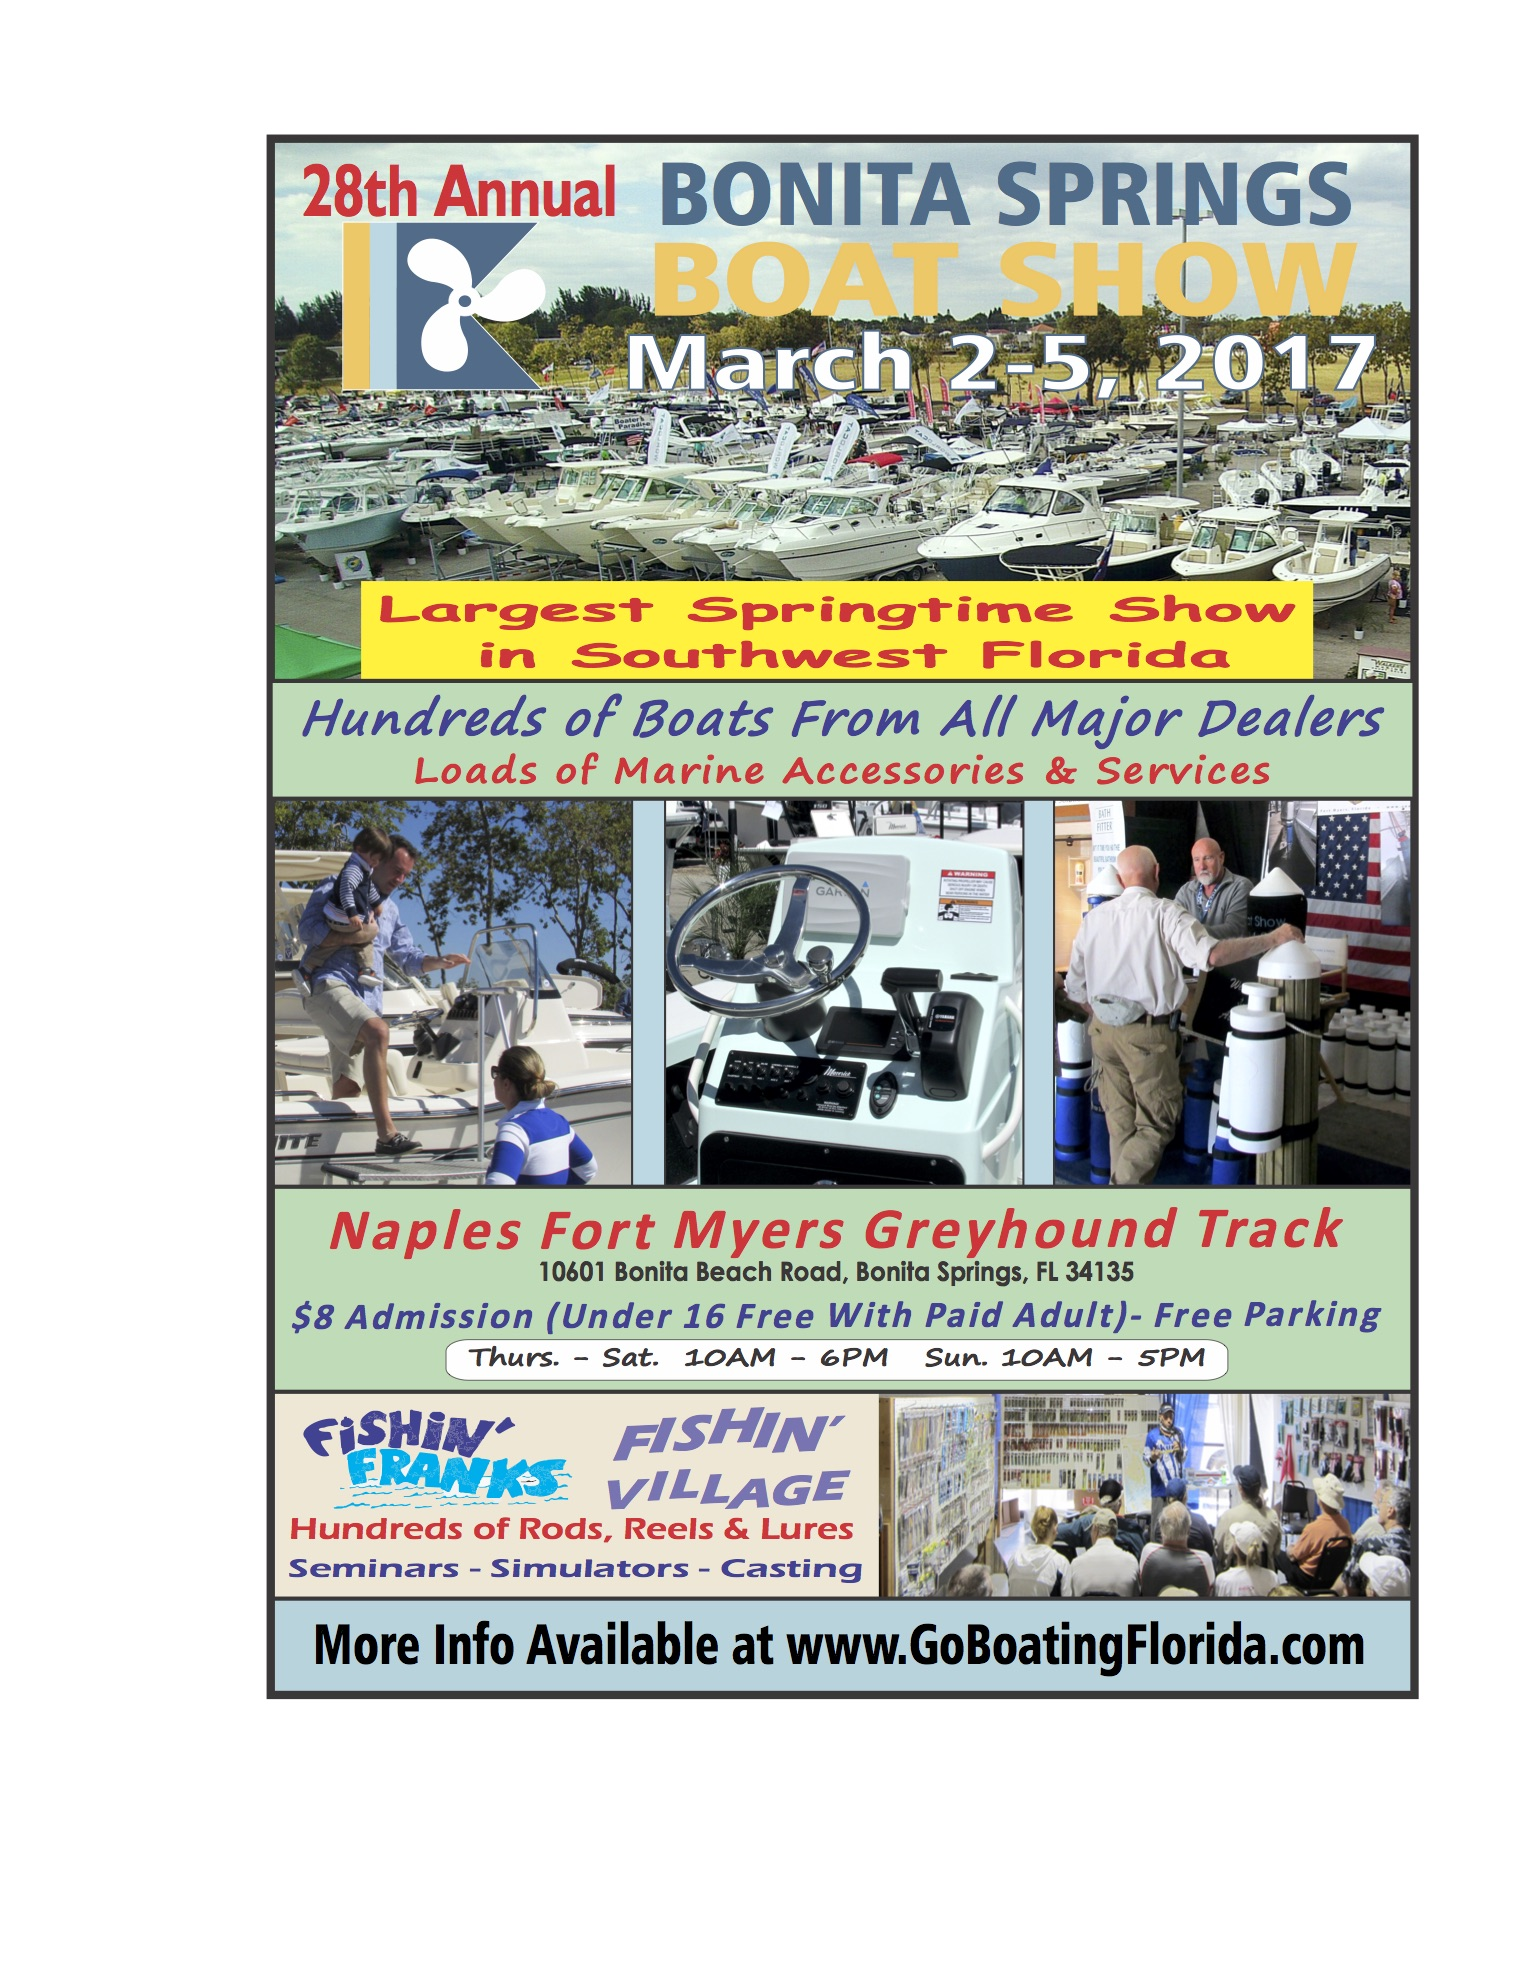 Bonita boat show march 2nd 5th coastal angler the angler magazine march 2nd 5th the 28th annual bonita springs boat show will be held the the naples fort myers greyhound track the show will open each day at 10 am and nvjuhfo Choice Image